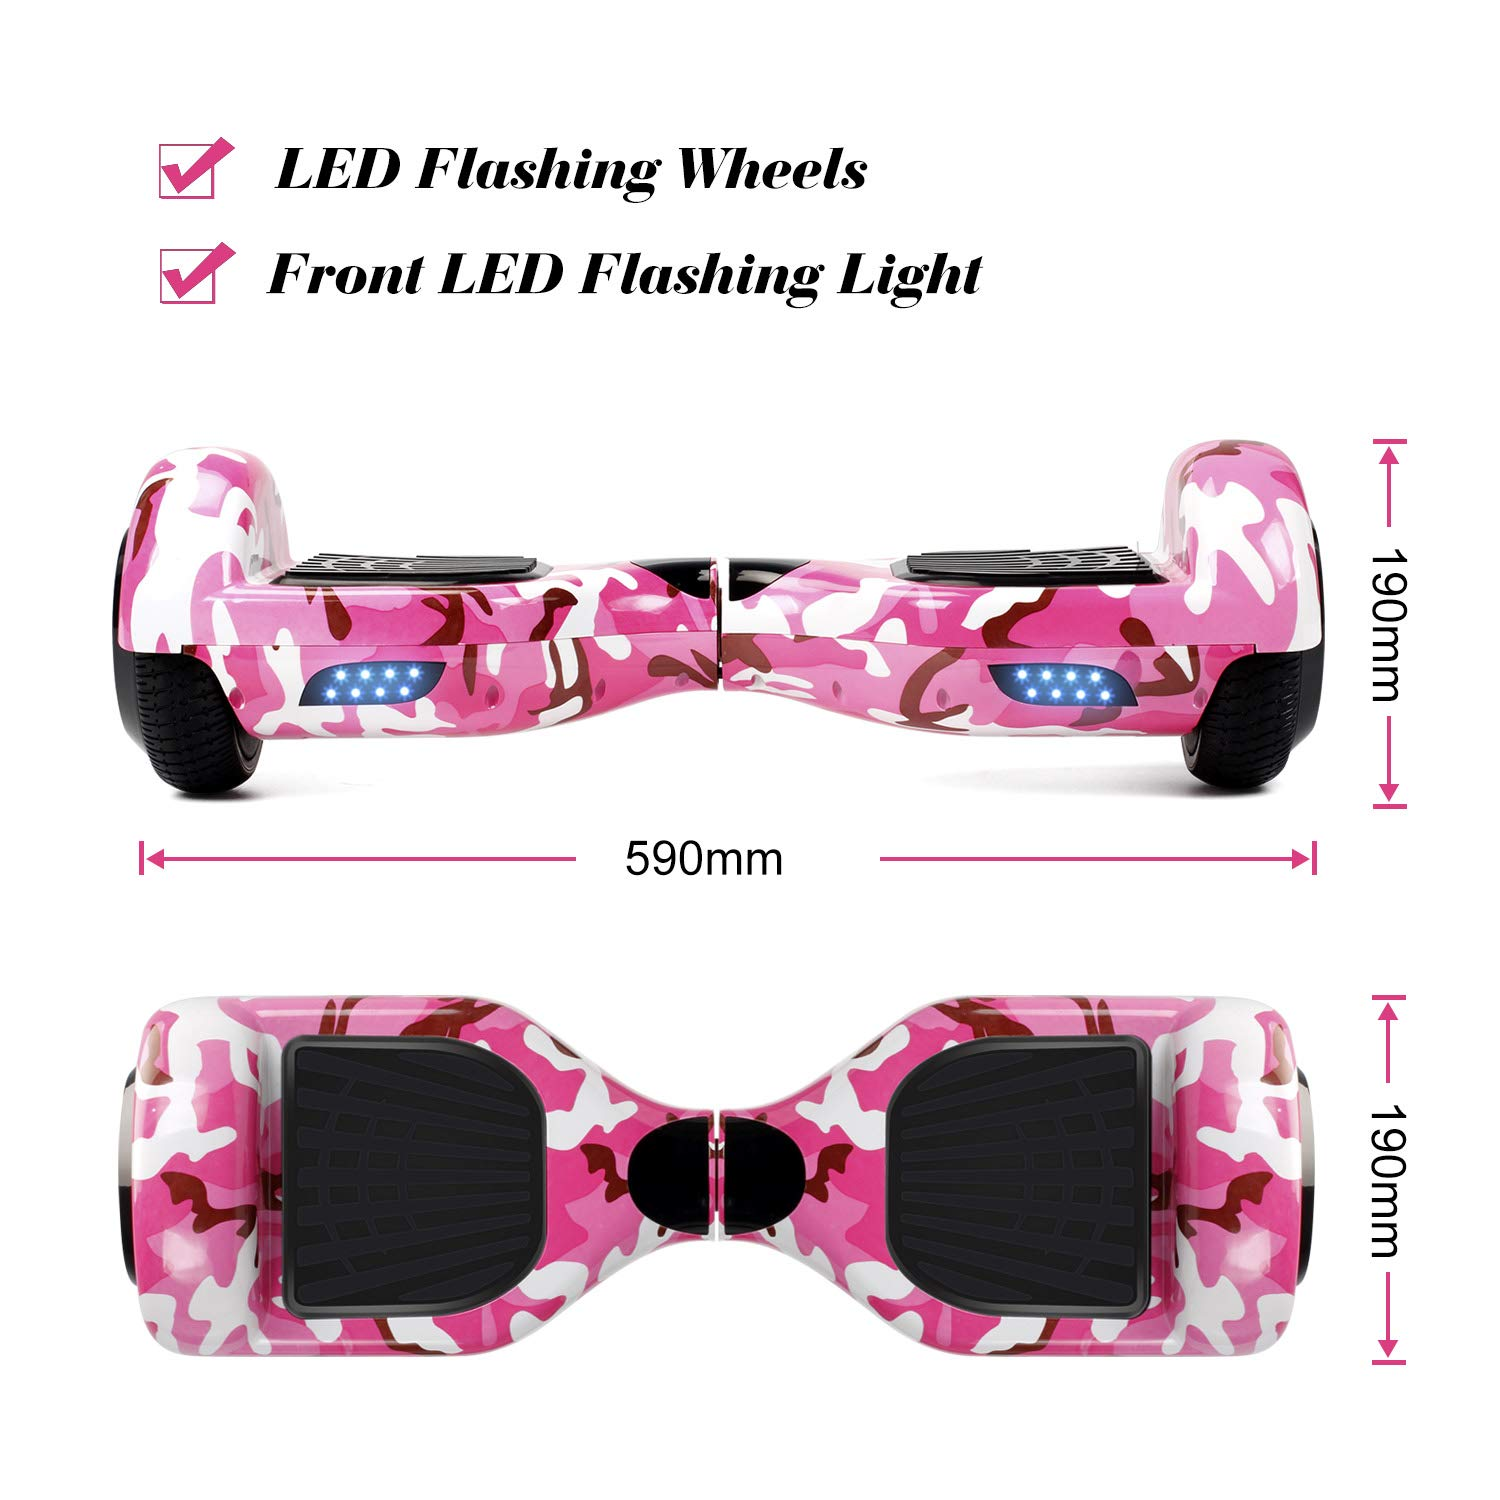 SISIGAD Hoverboard Self Balancing Scooter 6.5'' Two-Wheel Self Balancing Hoverboard with LED Lights Electric Scooter for Adult Kids Gift UL 2272 Certified Fun Edition - Pink Camou by SISIGAD (Image #2)